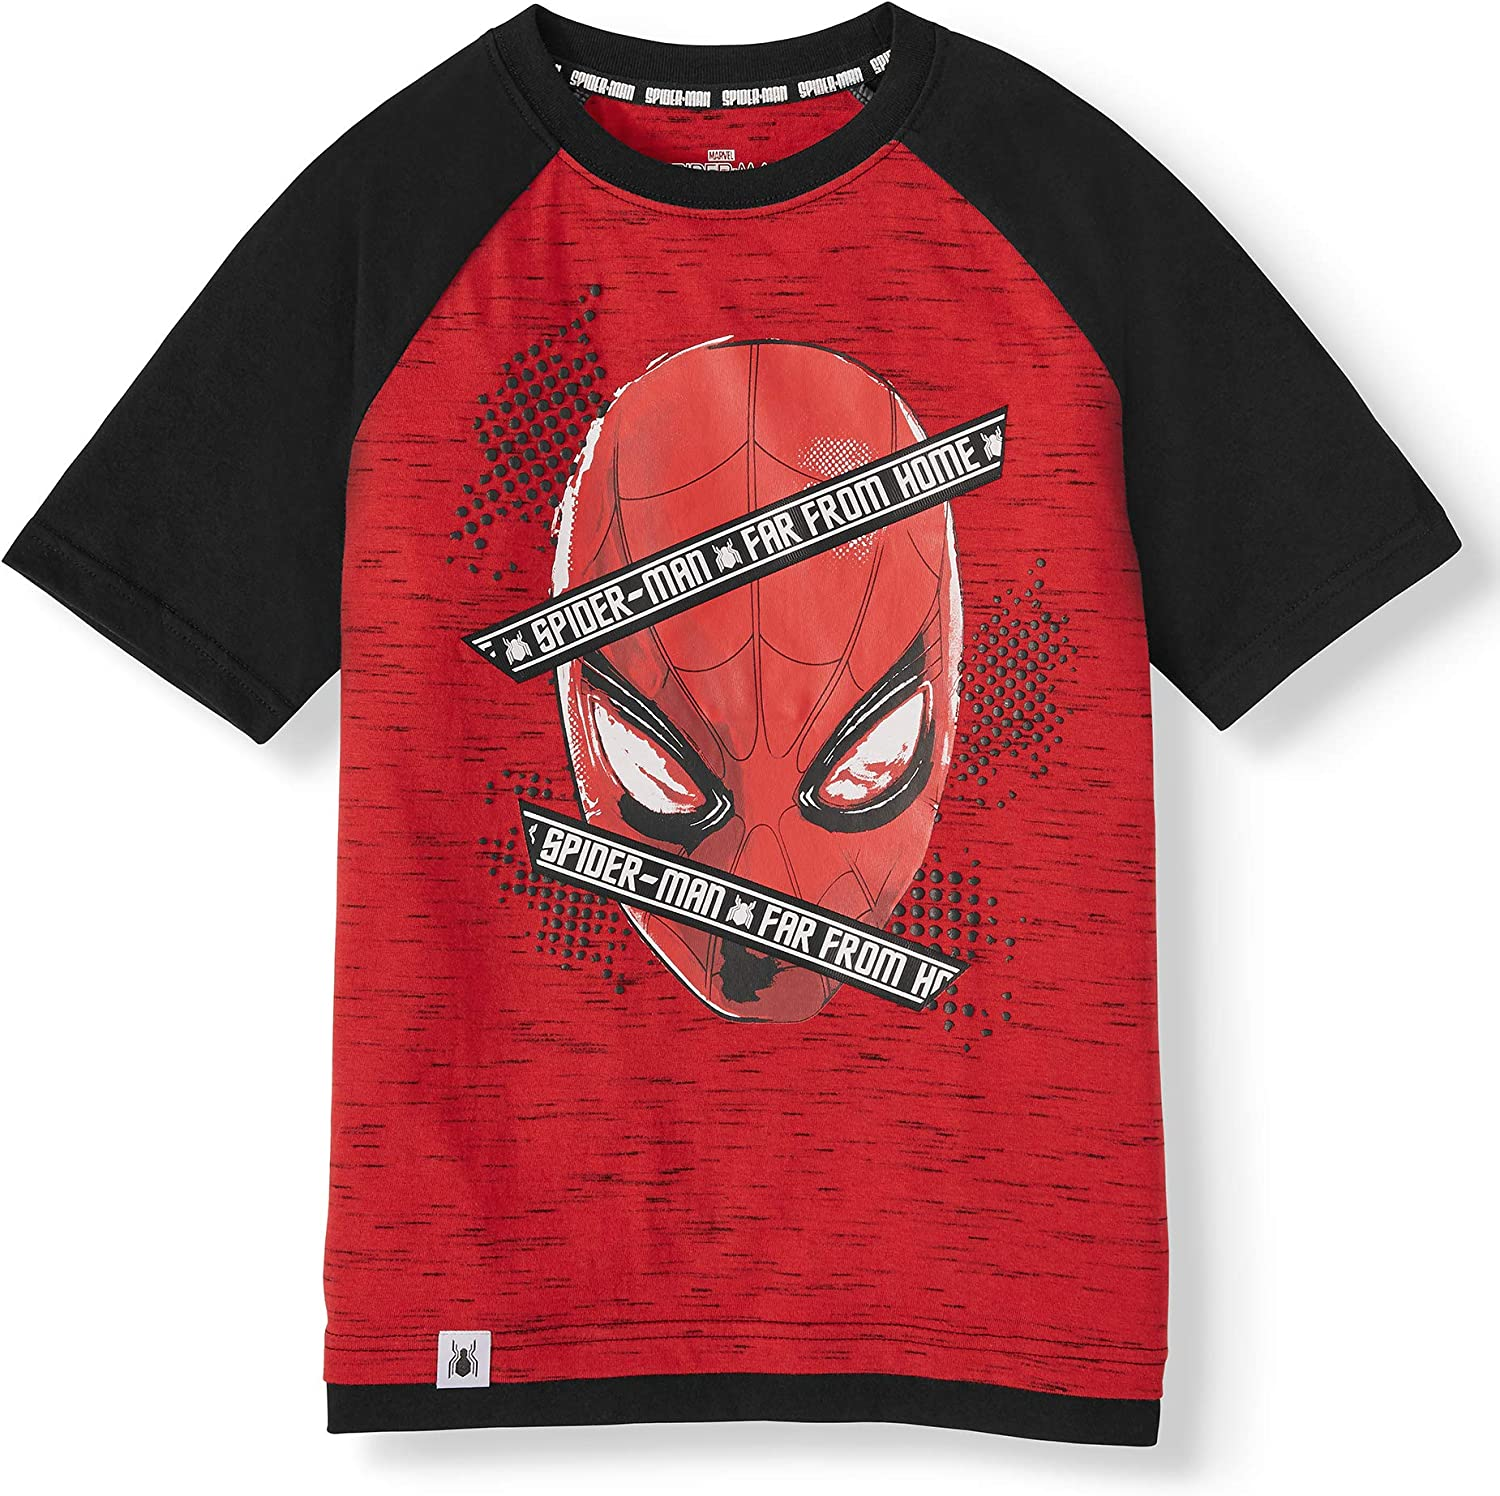 Marvel Spider-Man Boys Short Sleeve Graphic Two-Tone T-Shirt - Far from Home Red/Black